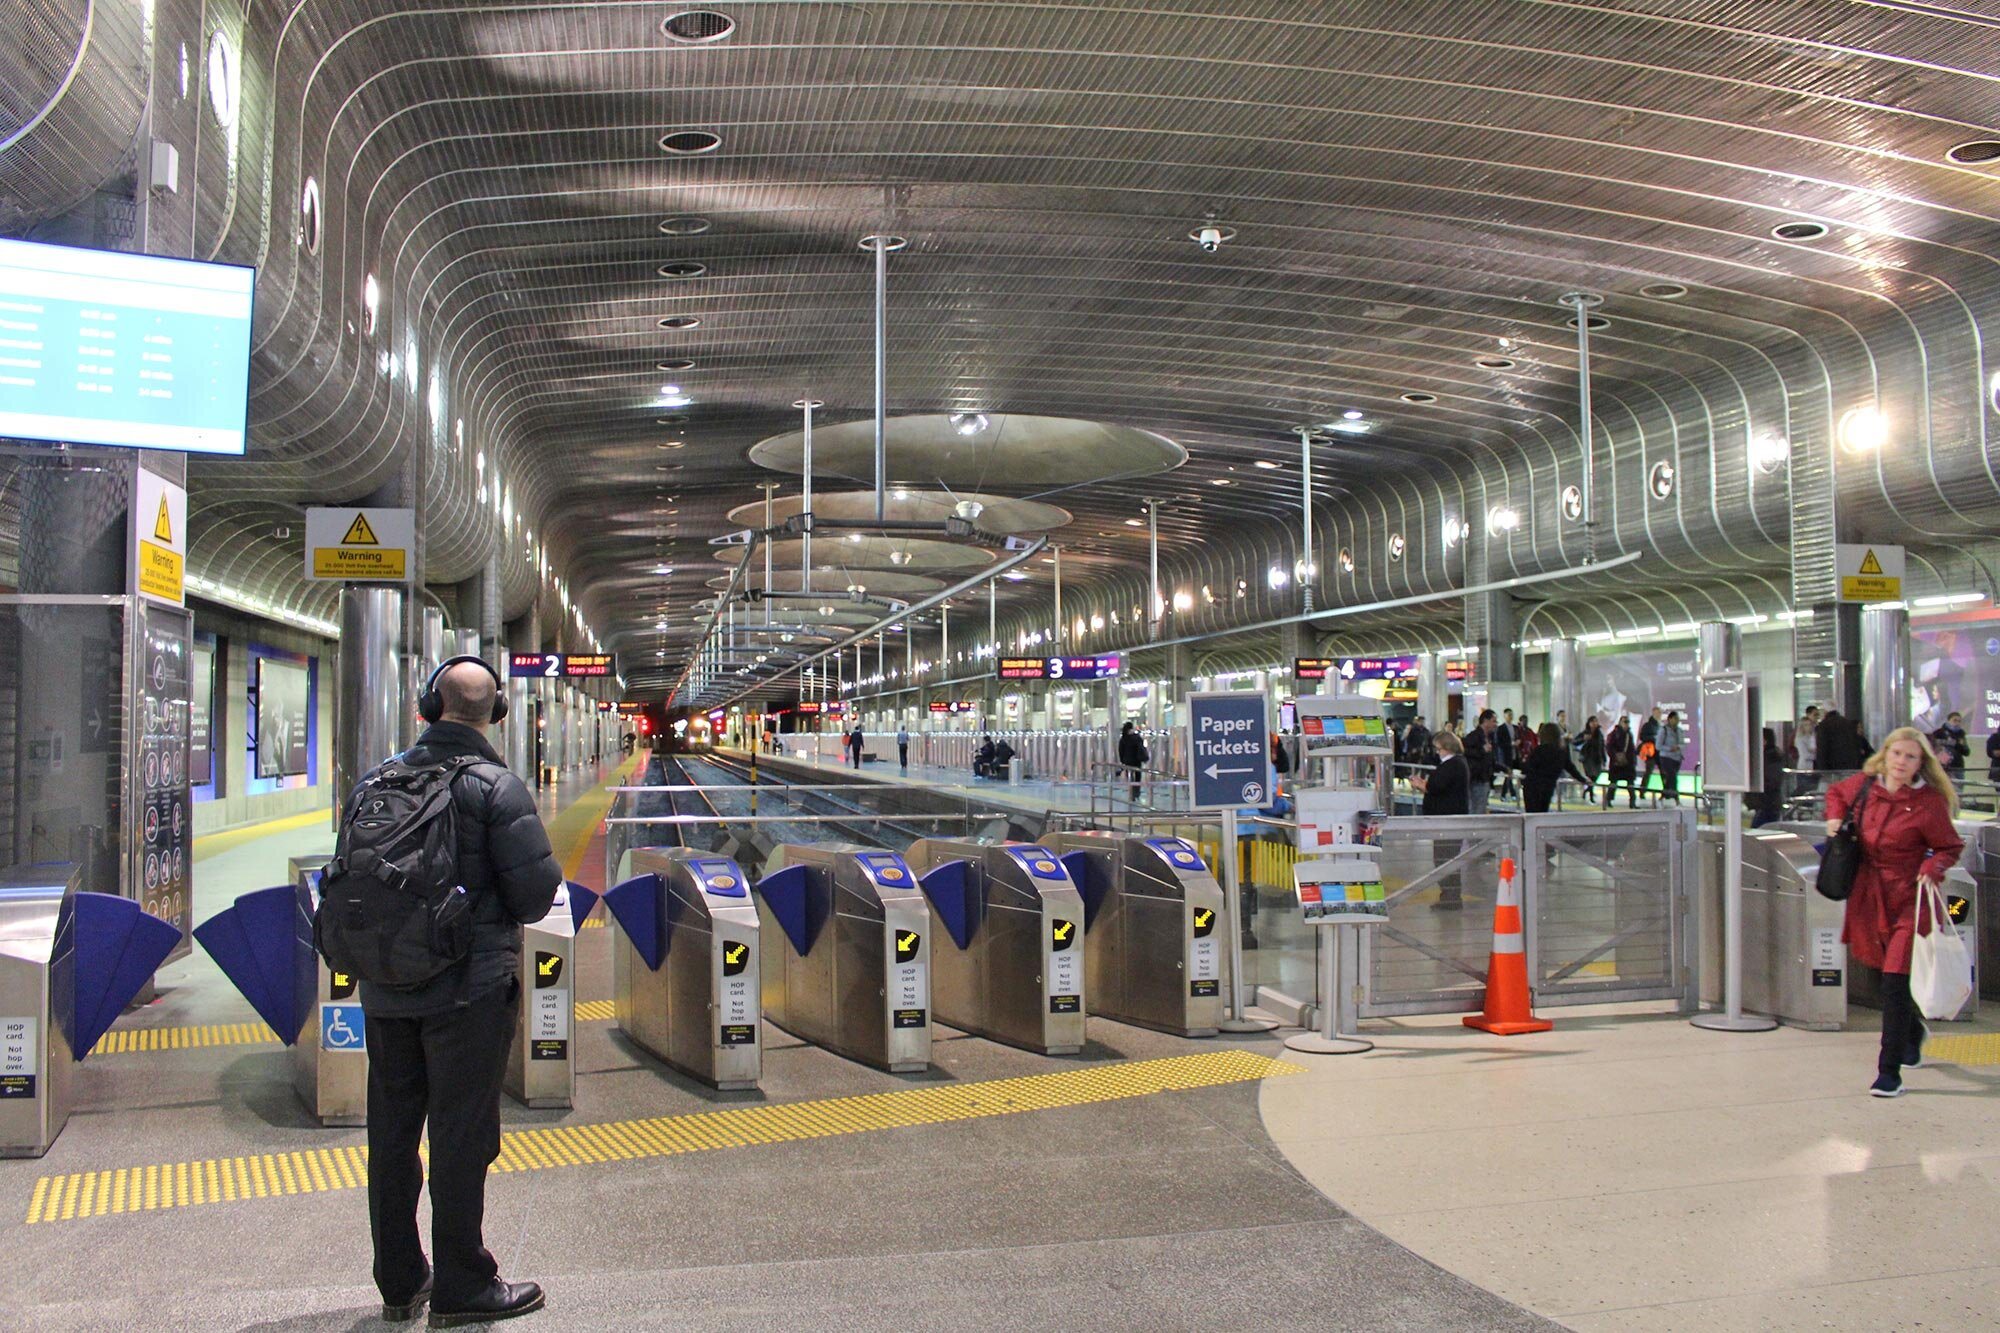 Britomart Station will have eight new escalators in total